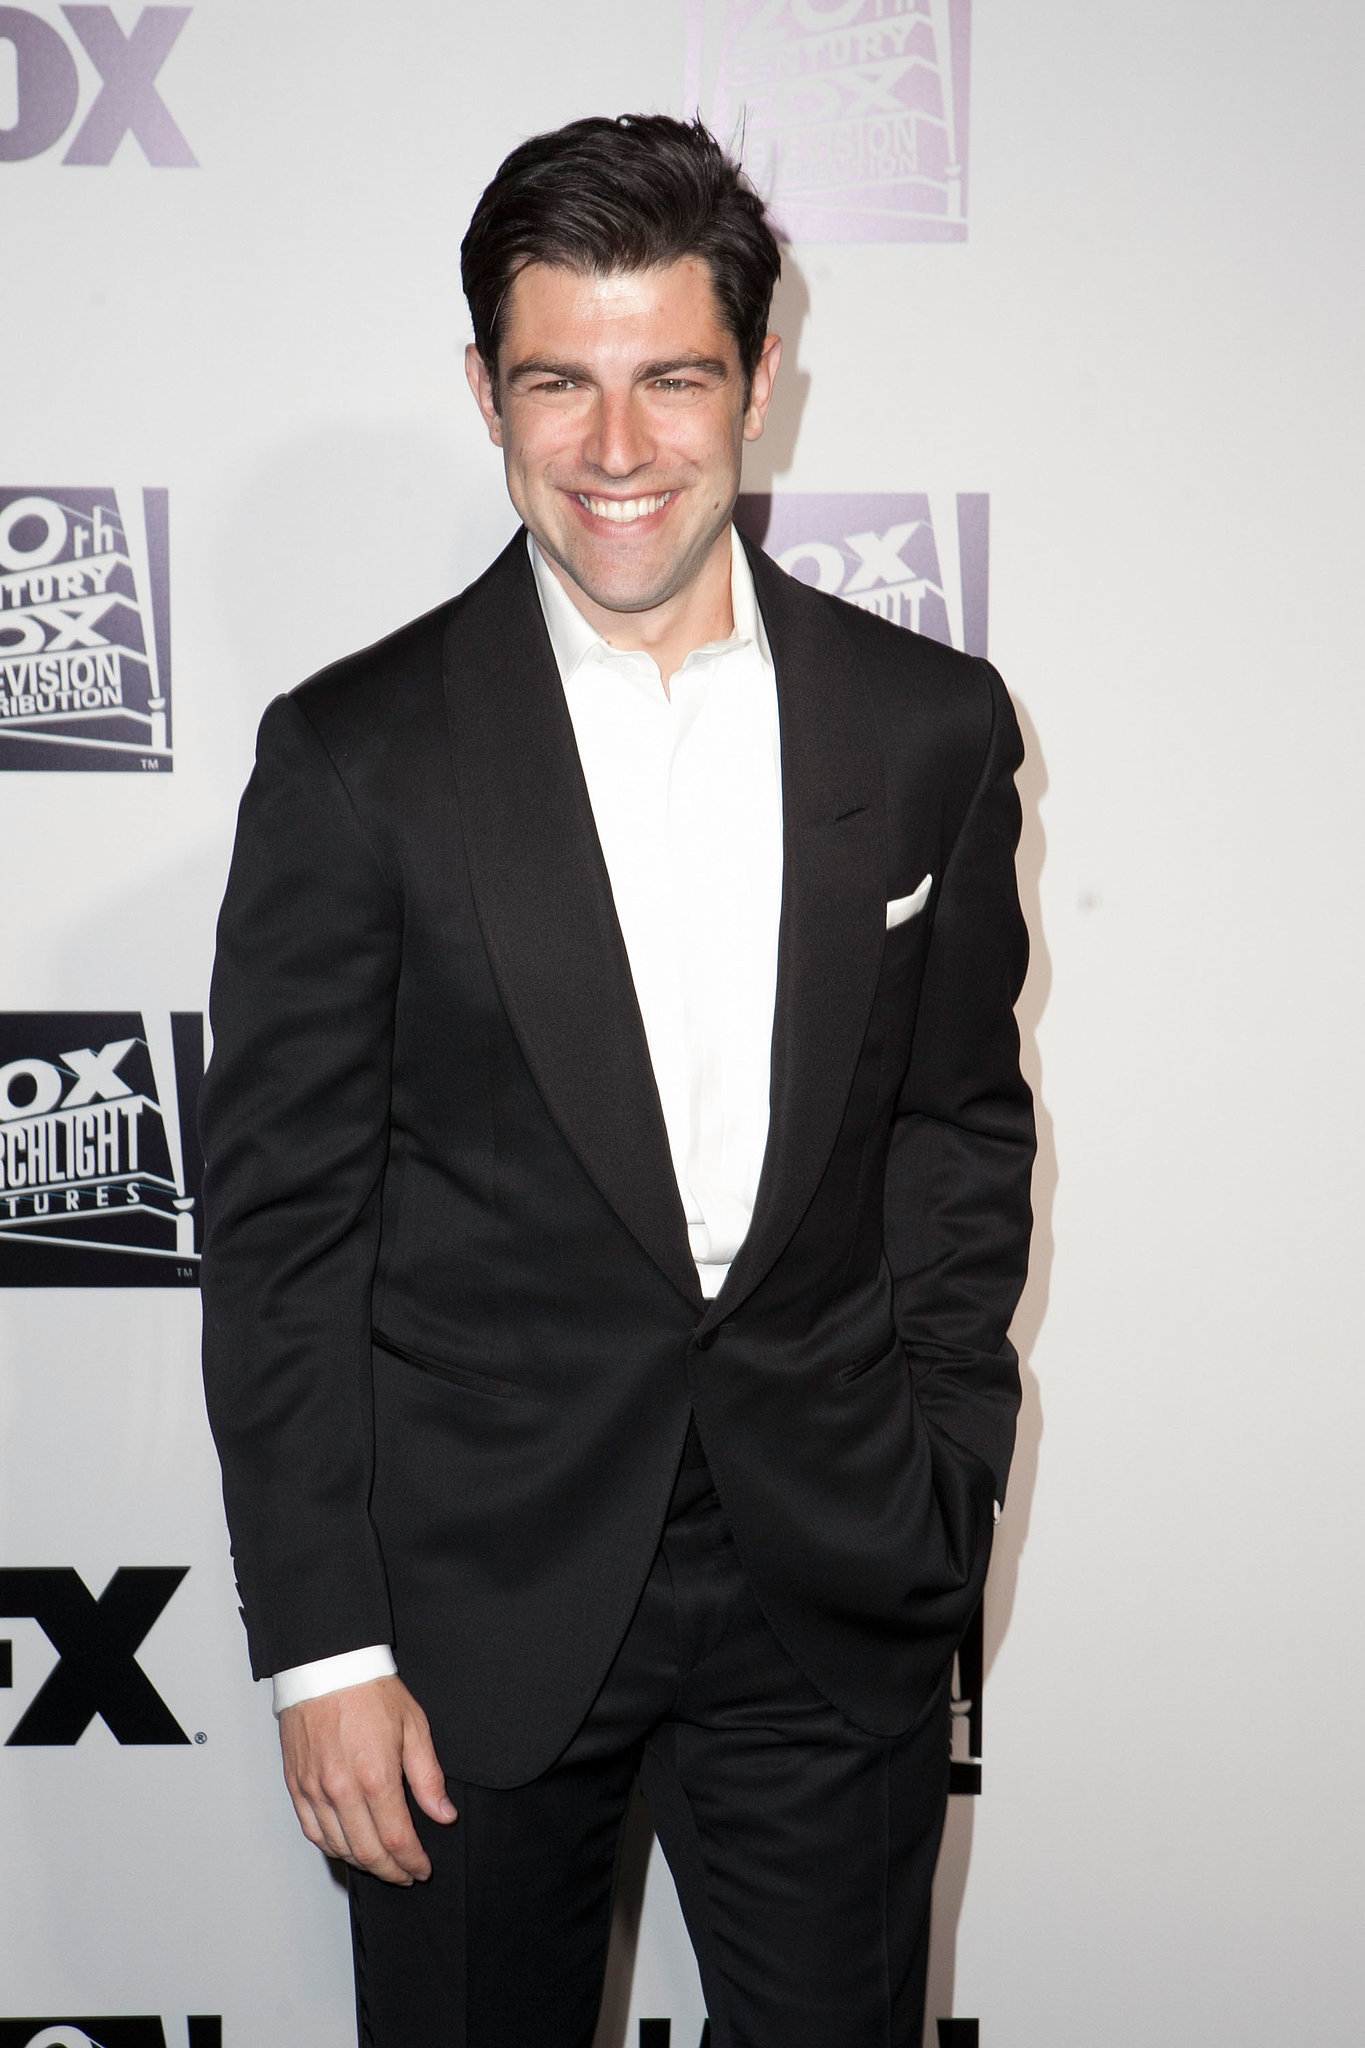 Max Greenfield grinned.